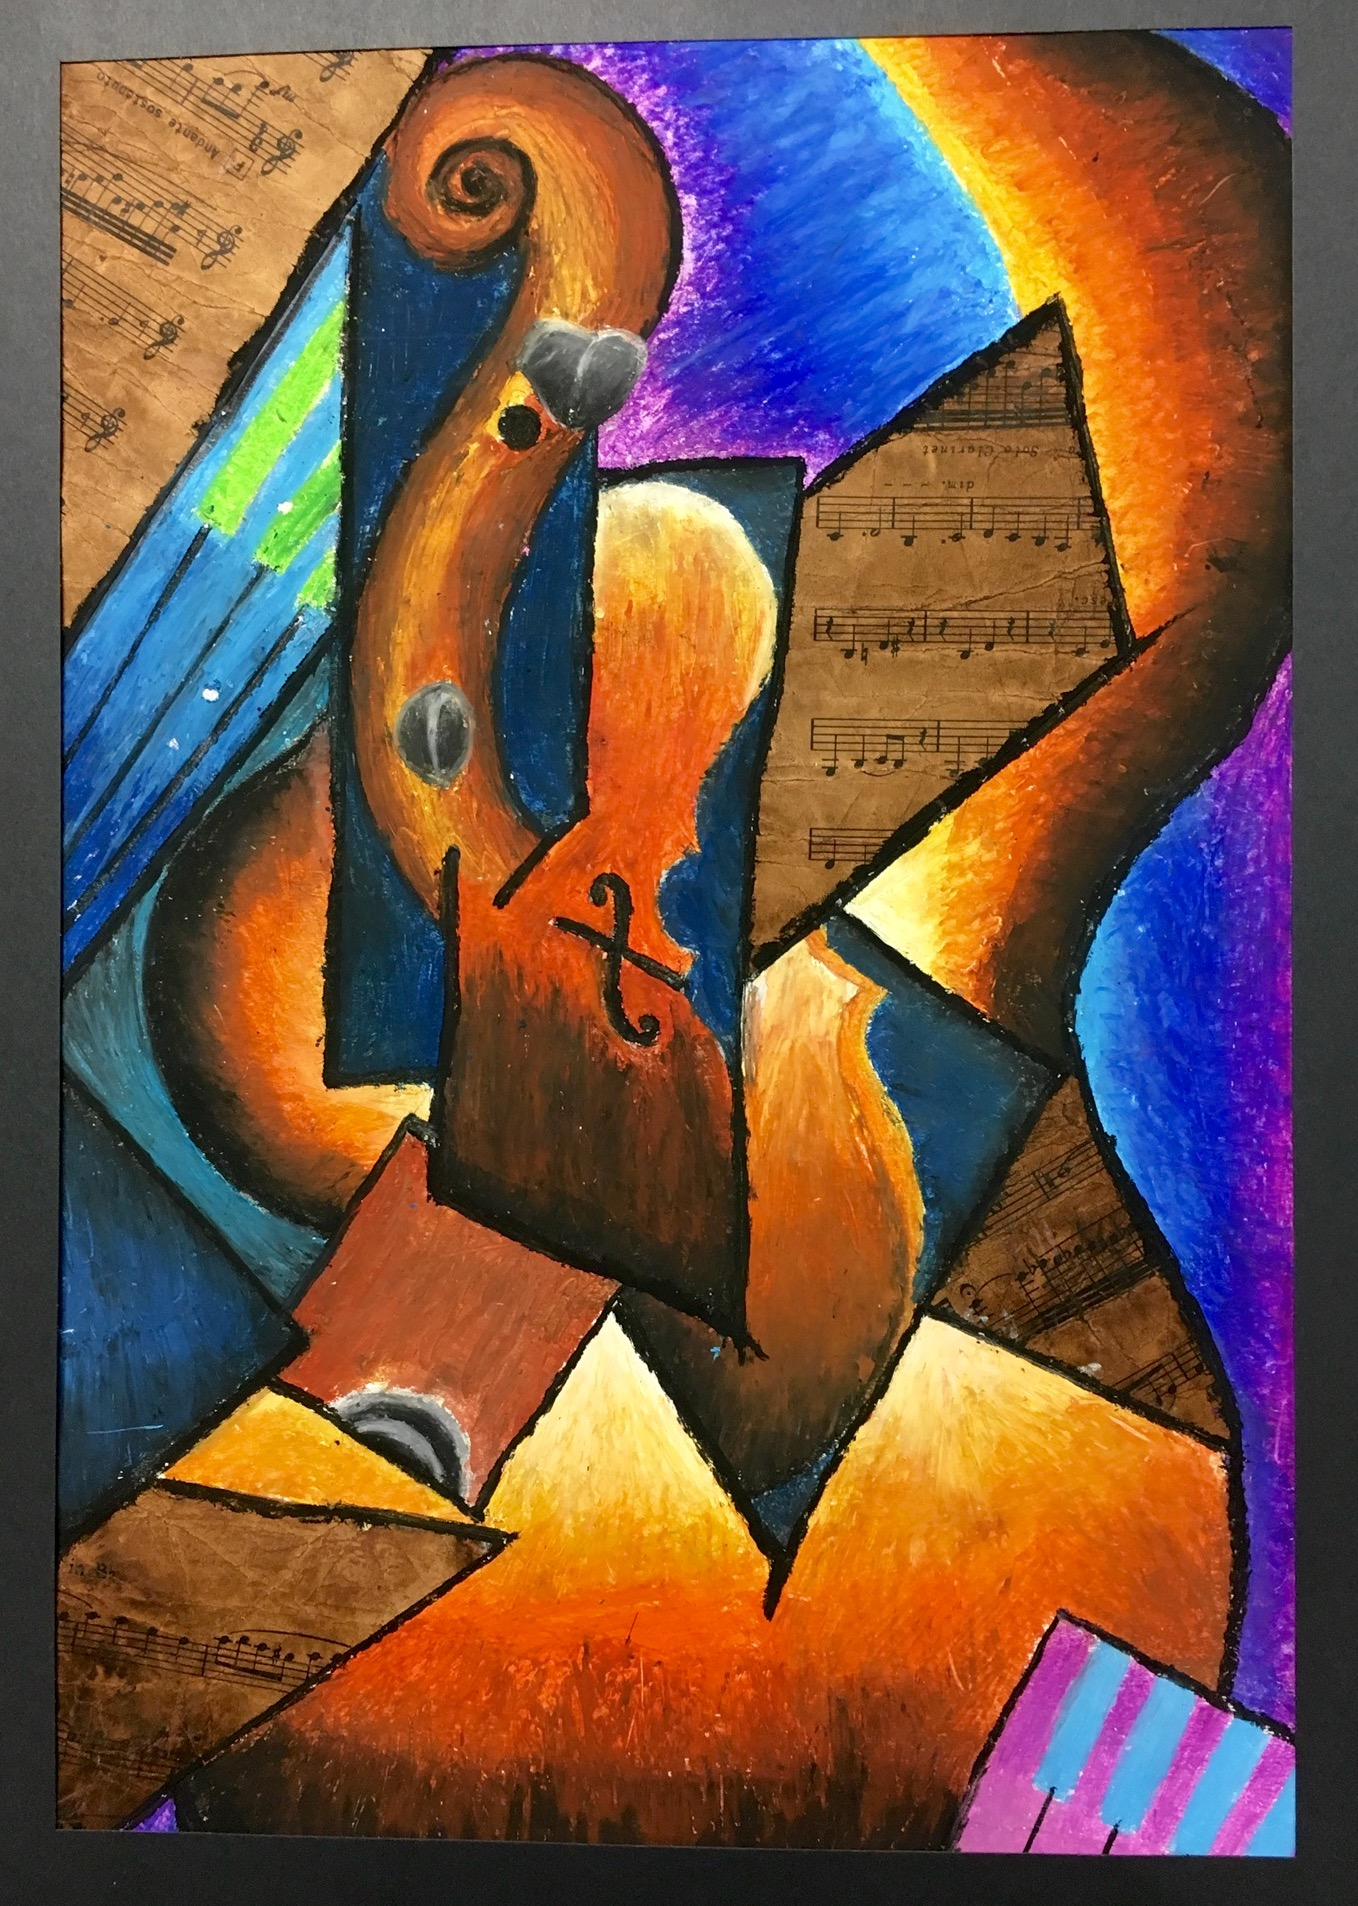 hight resolution of Cubism Instrument Oil Pastel and Collage Art Lesson - Create Art with ME